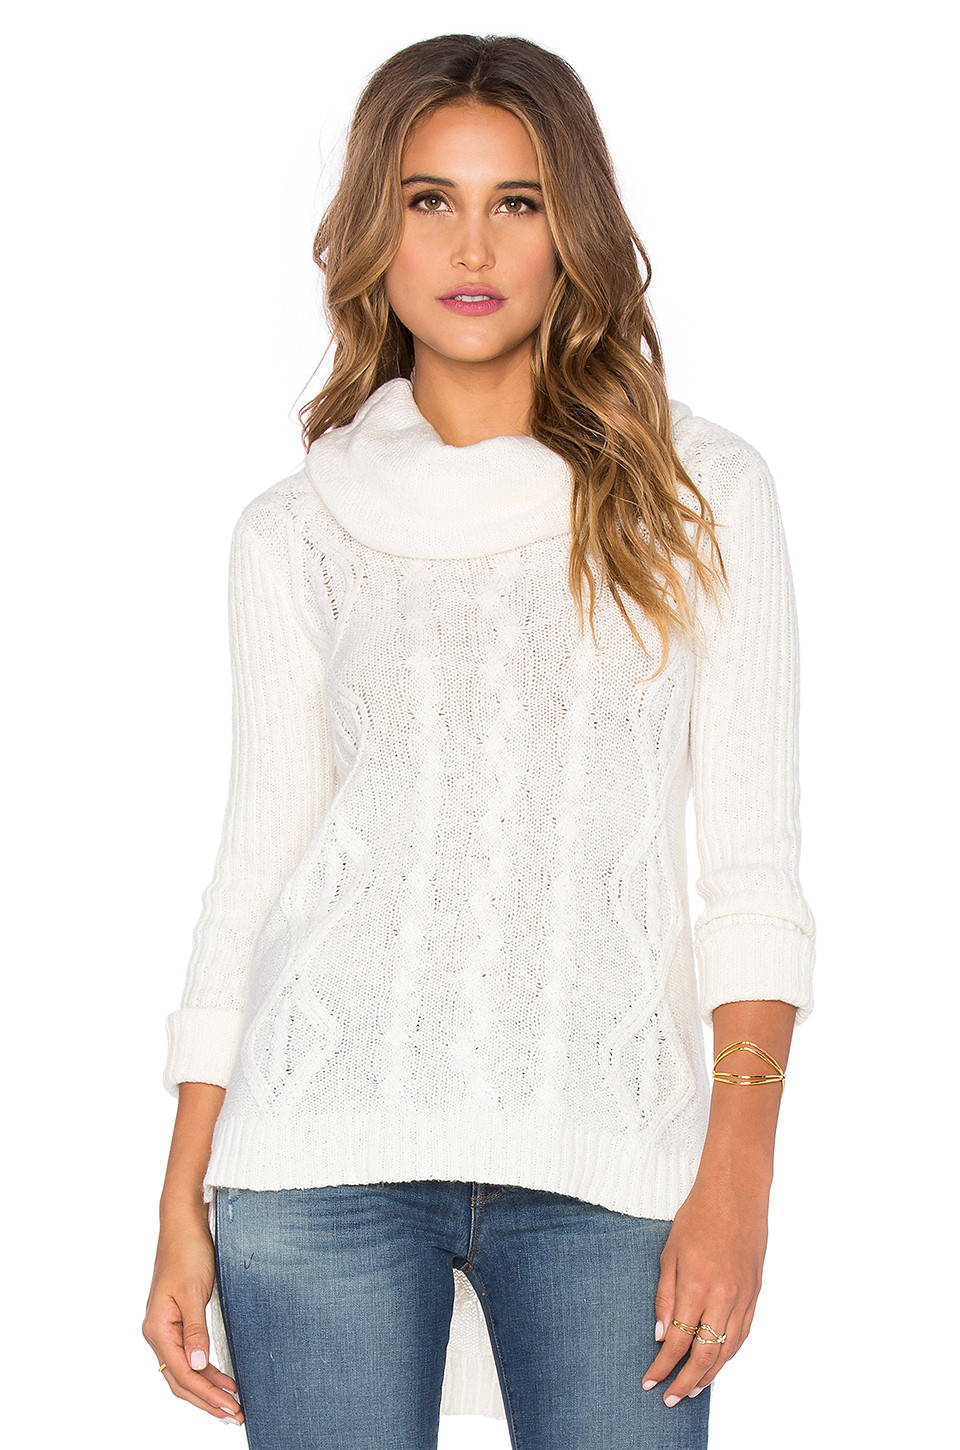 Lamade Lightweight Cable Oversized Cowlneck Sweater in White | Lyst